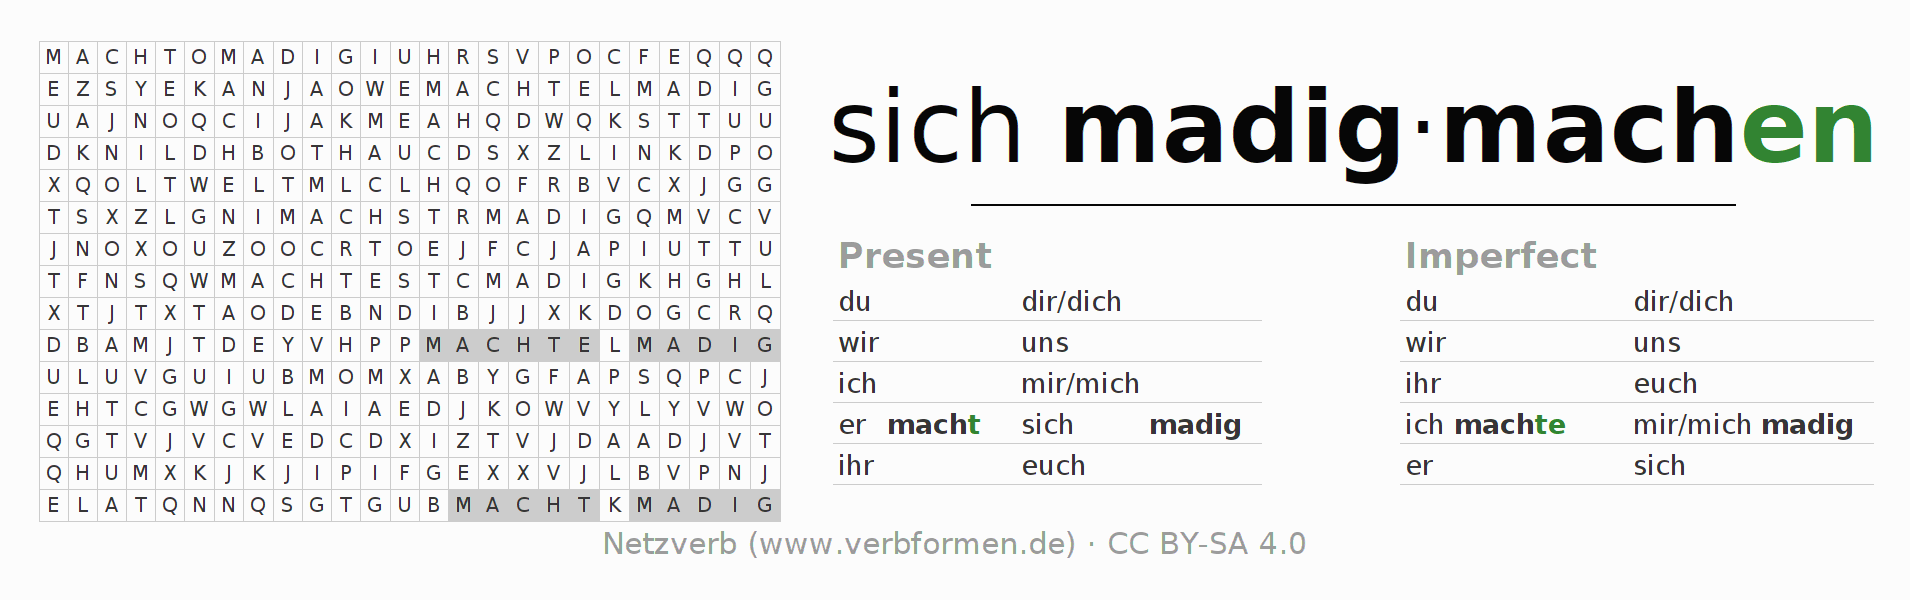 Word search puzzle for the conjugation of the verb sich madigmachen